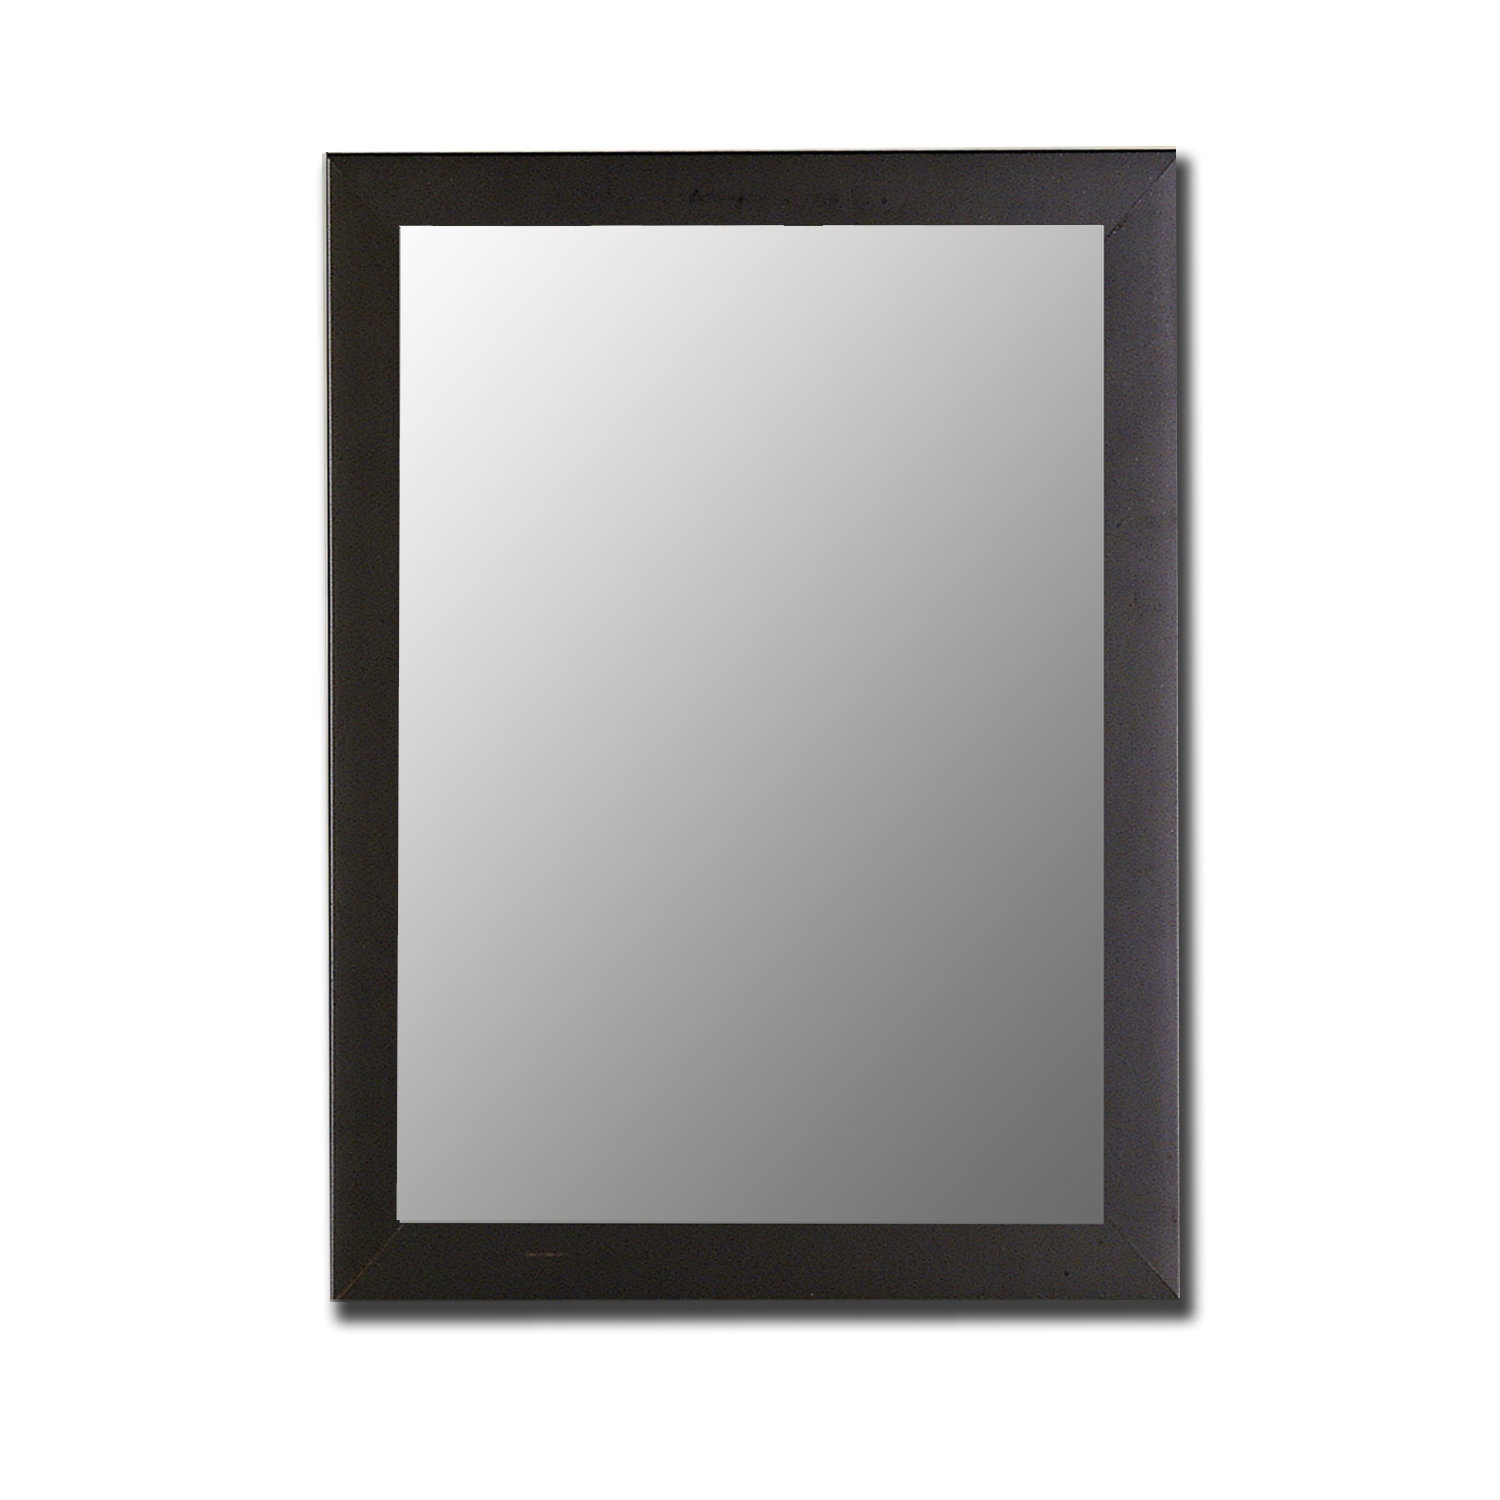 35 Inch Mirror | Wayfair In Northend Wall Mirrors (Photo 5 of 20)